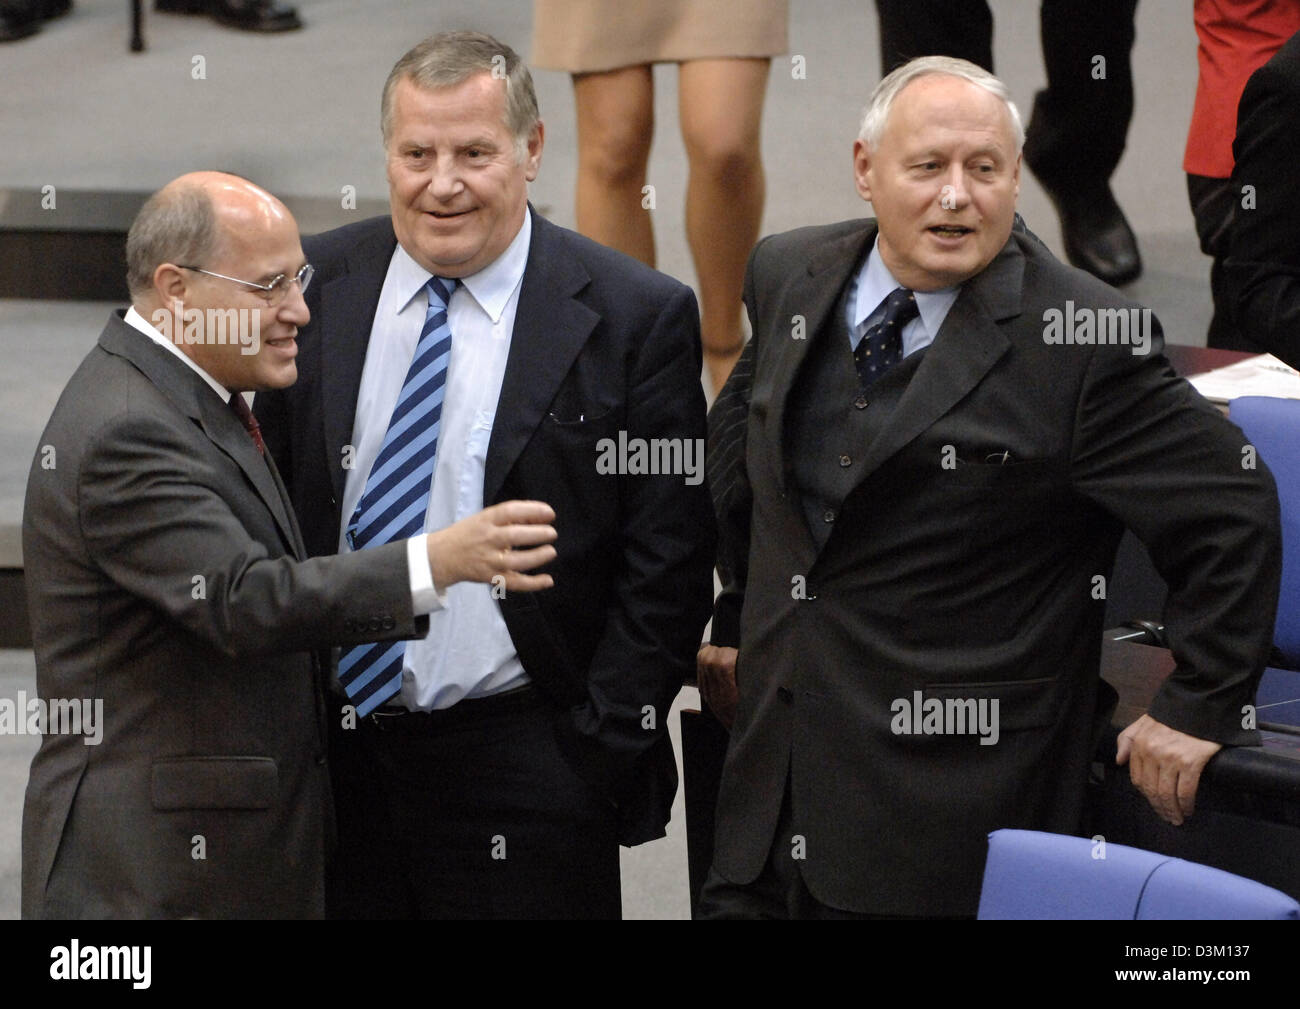 (dpa) - Oskar Lafontaine (R) and Gregor Gysi (L), the joint chairmen of the parliamentary faction of the 'Linkspartei' (Left Party) and Lothart Bisky, the chairman of the party, talk to each other during the first session of the new parliament at the Reichstag building in Berlin, Germany, Tuesday, 18 October 2005. The parliament has come together for the first time since the genera Stock Photo